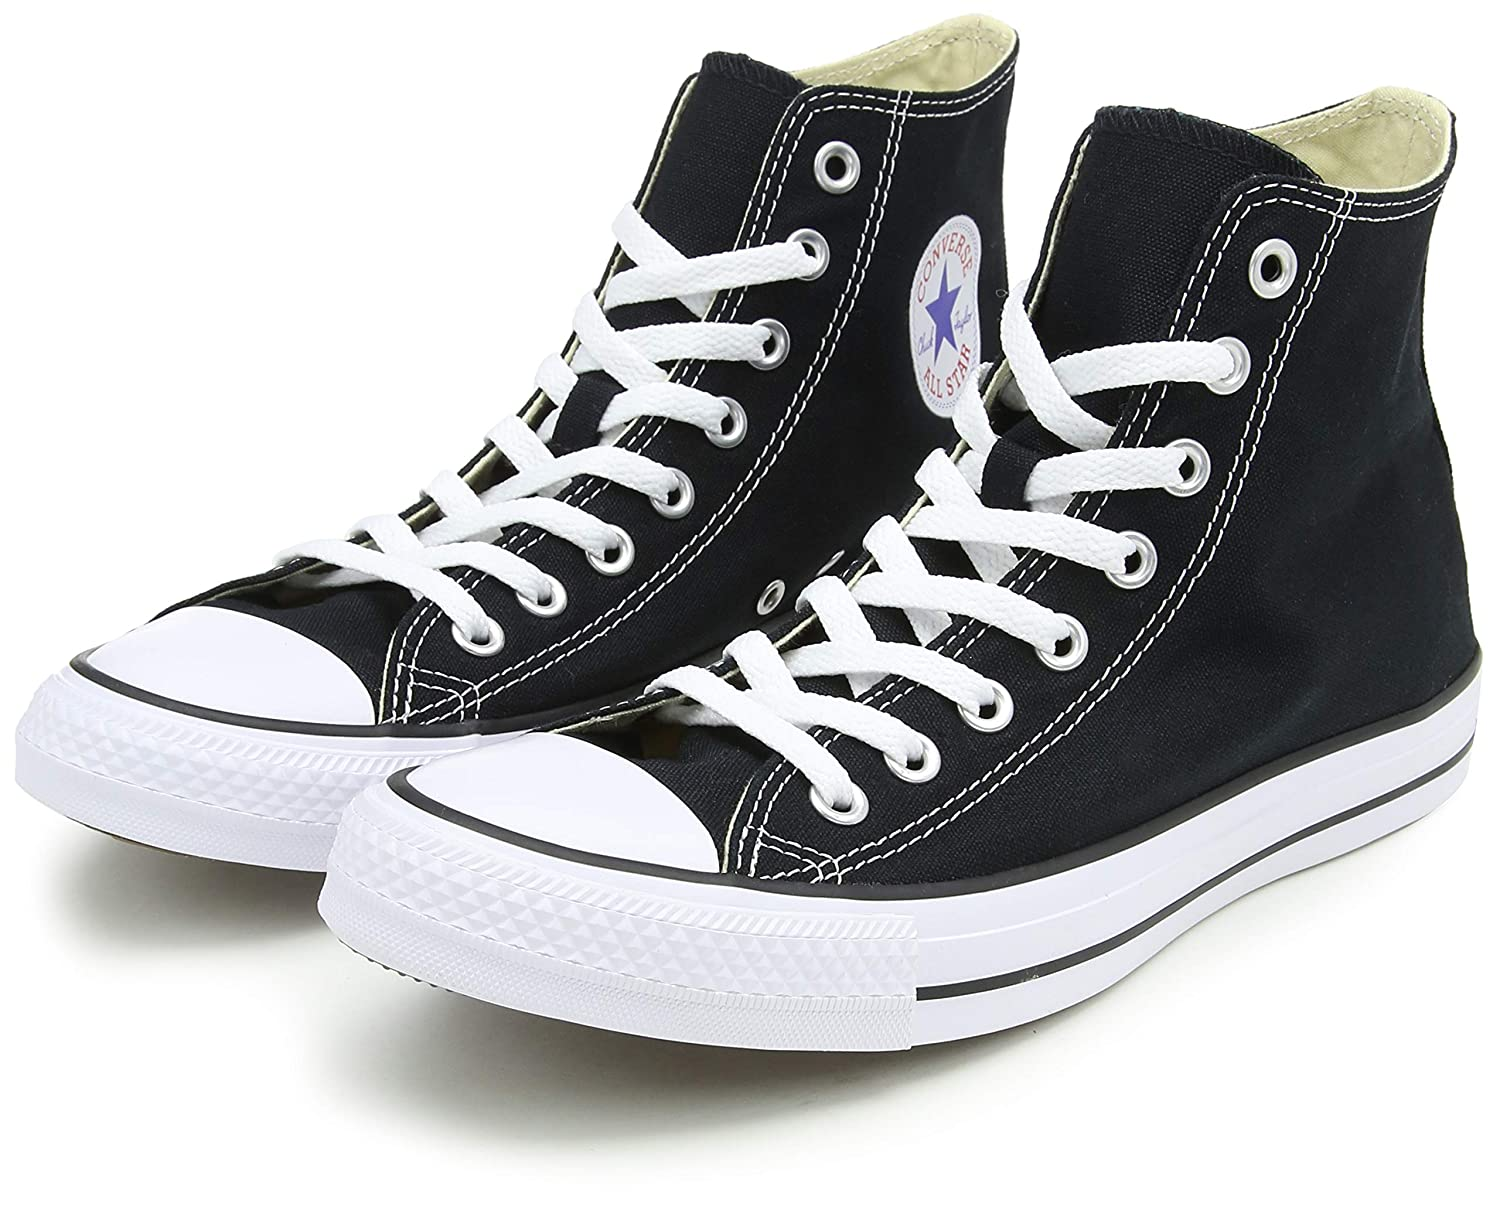 Core Mode Ctas Adulte Converse HiBaskets Mixte lPkOiXuZwT